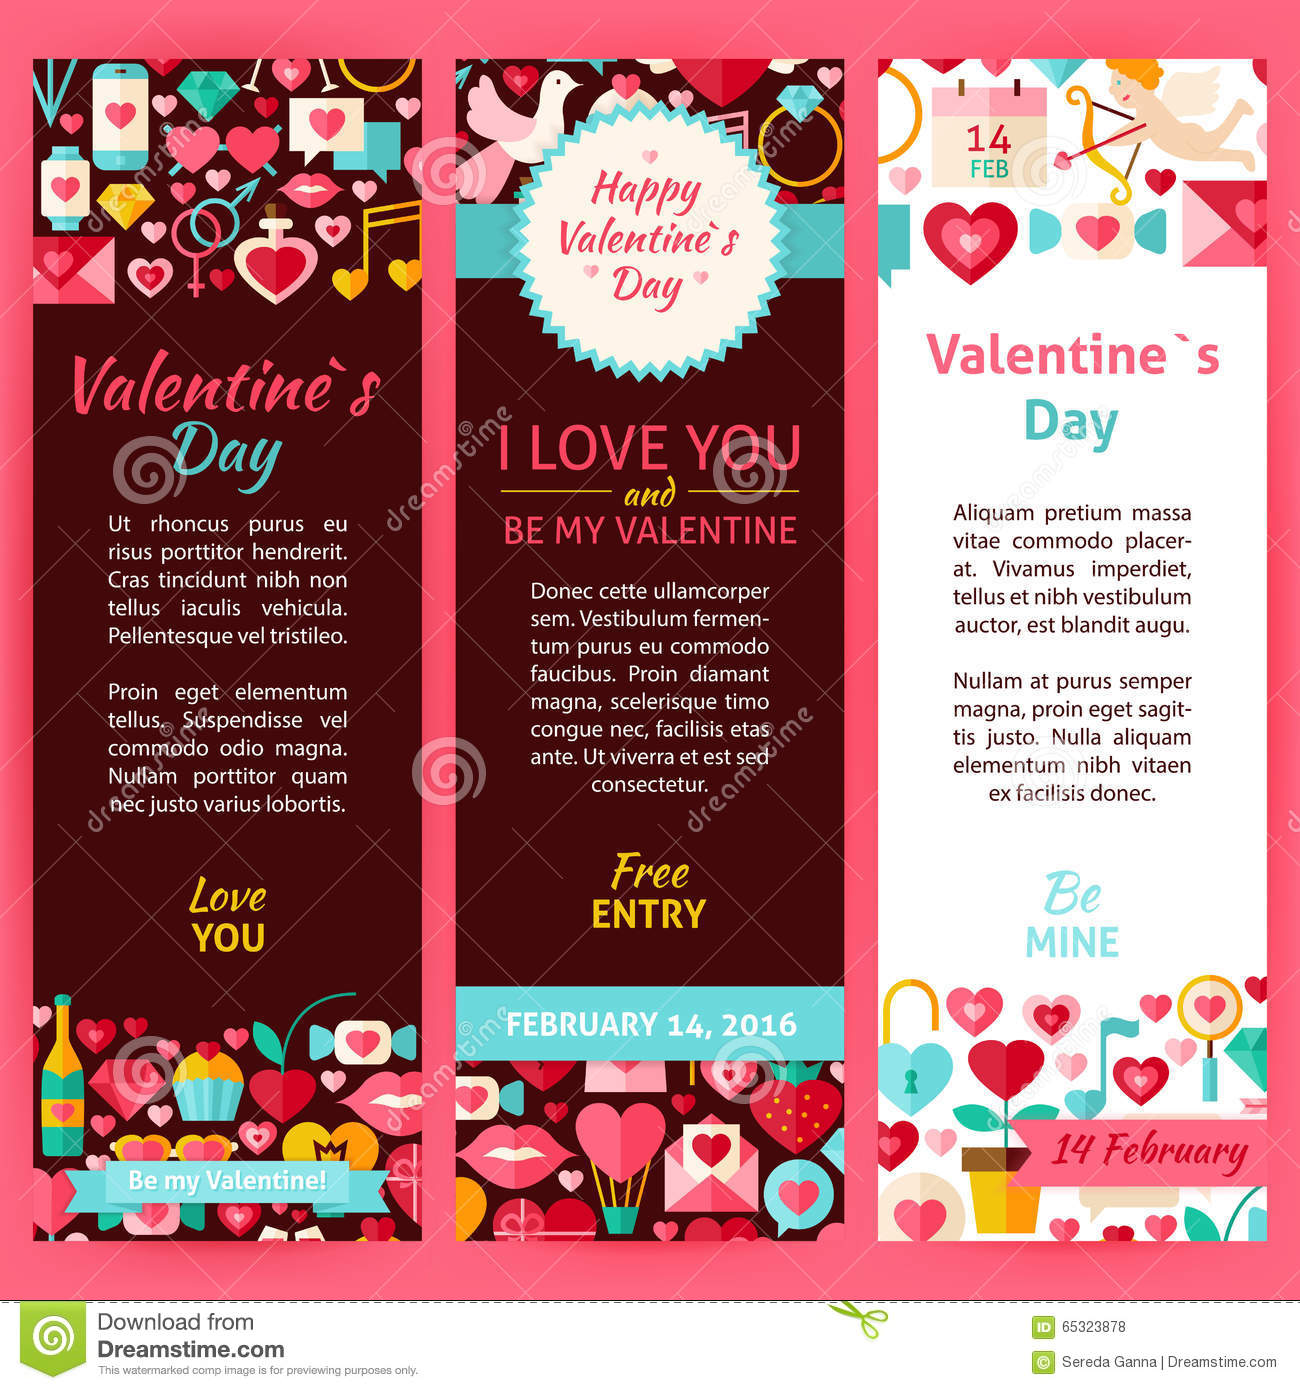 Valentines Day Party Invitation Flyer Royalty Free Image – Party Invitation Flyer